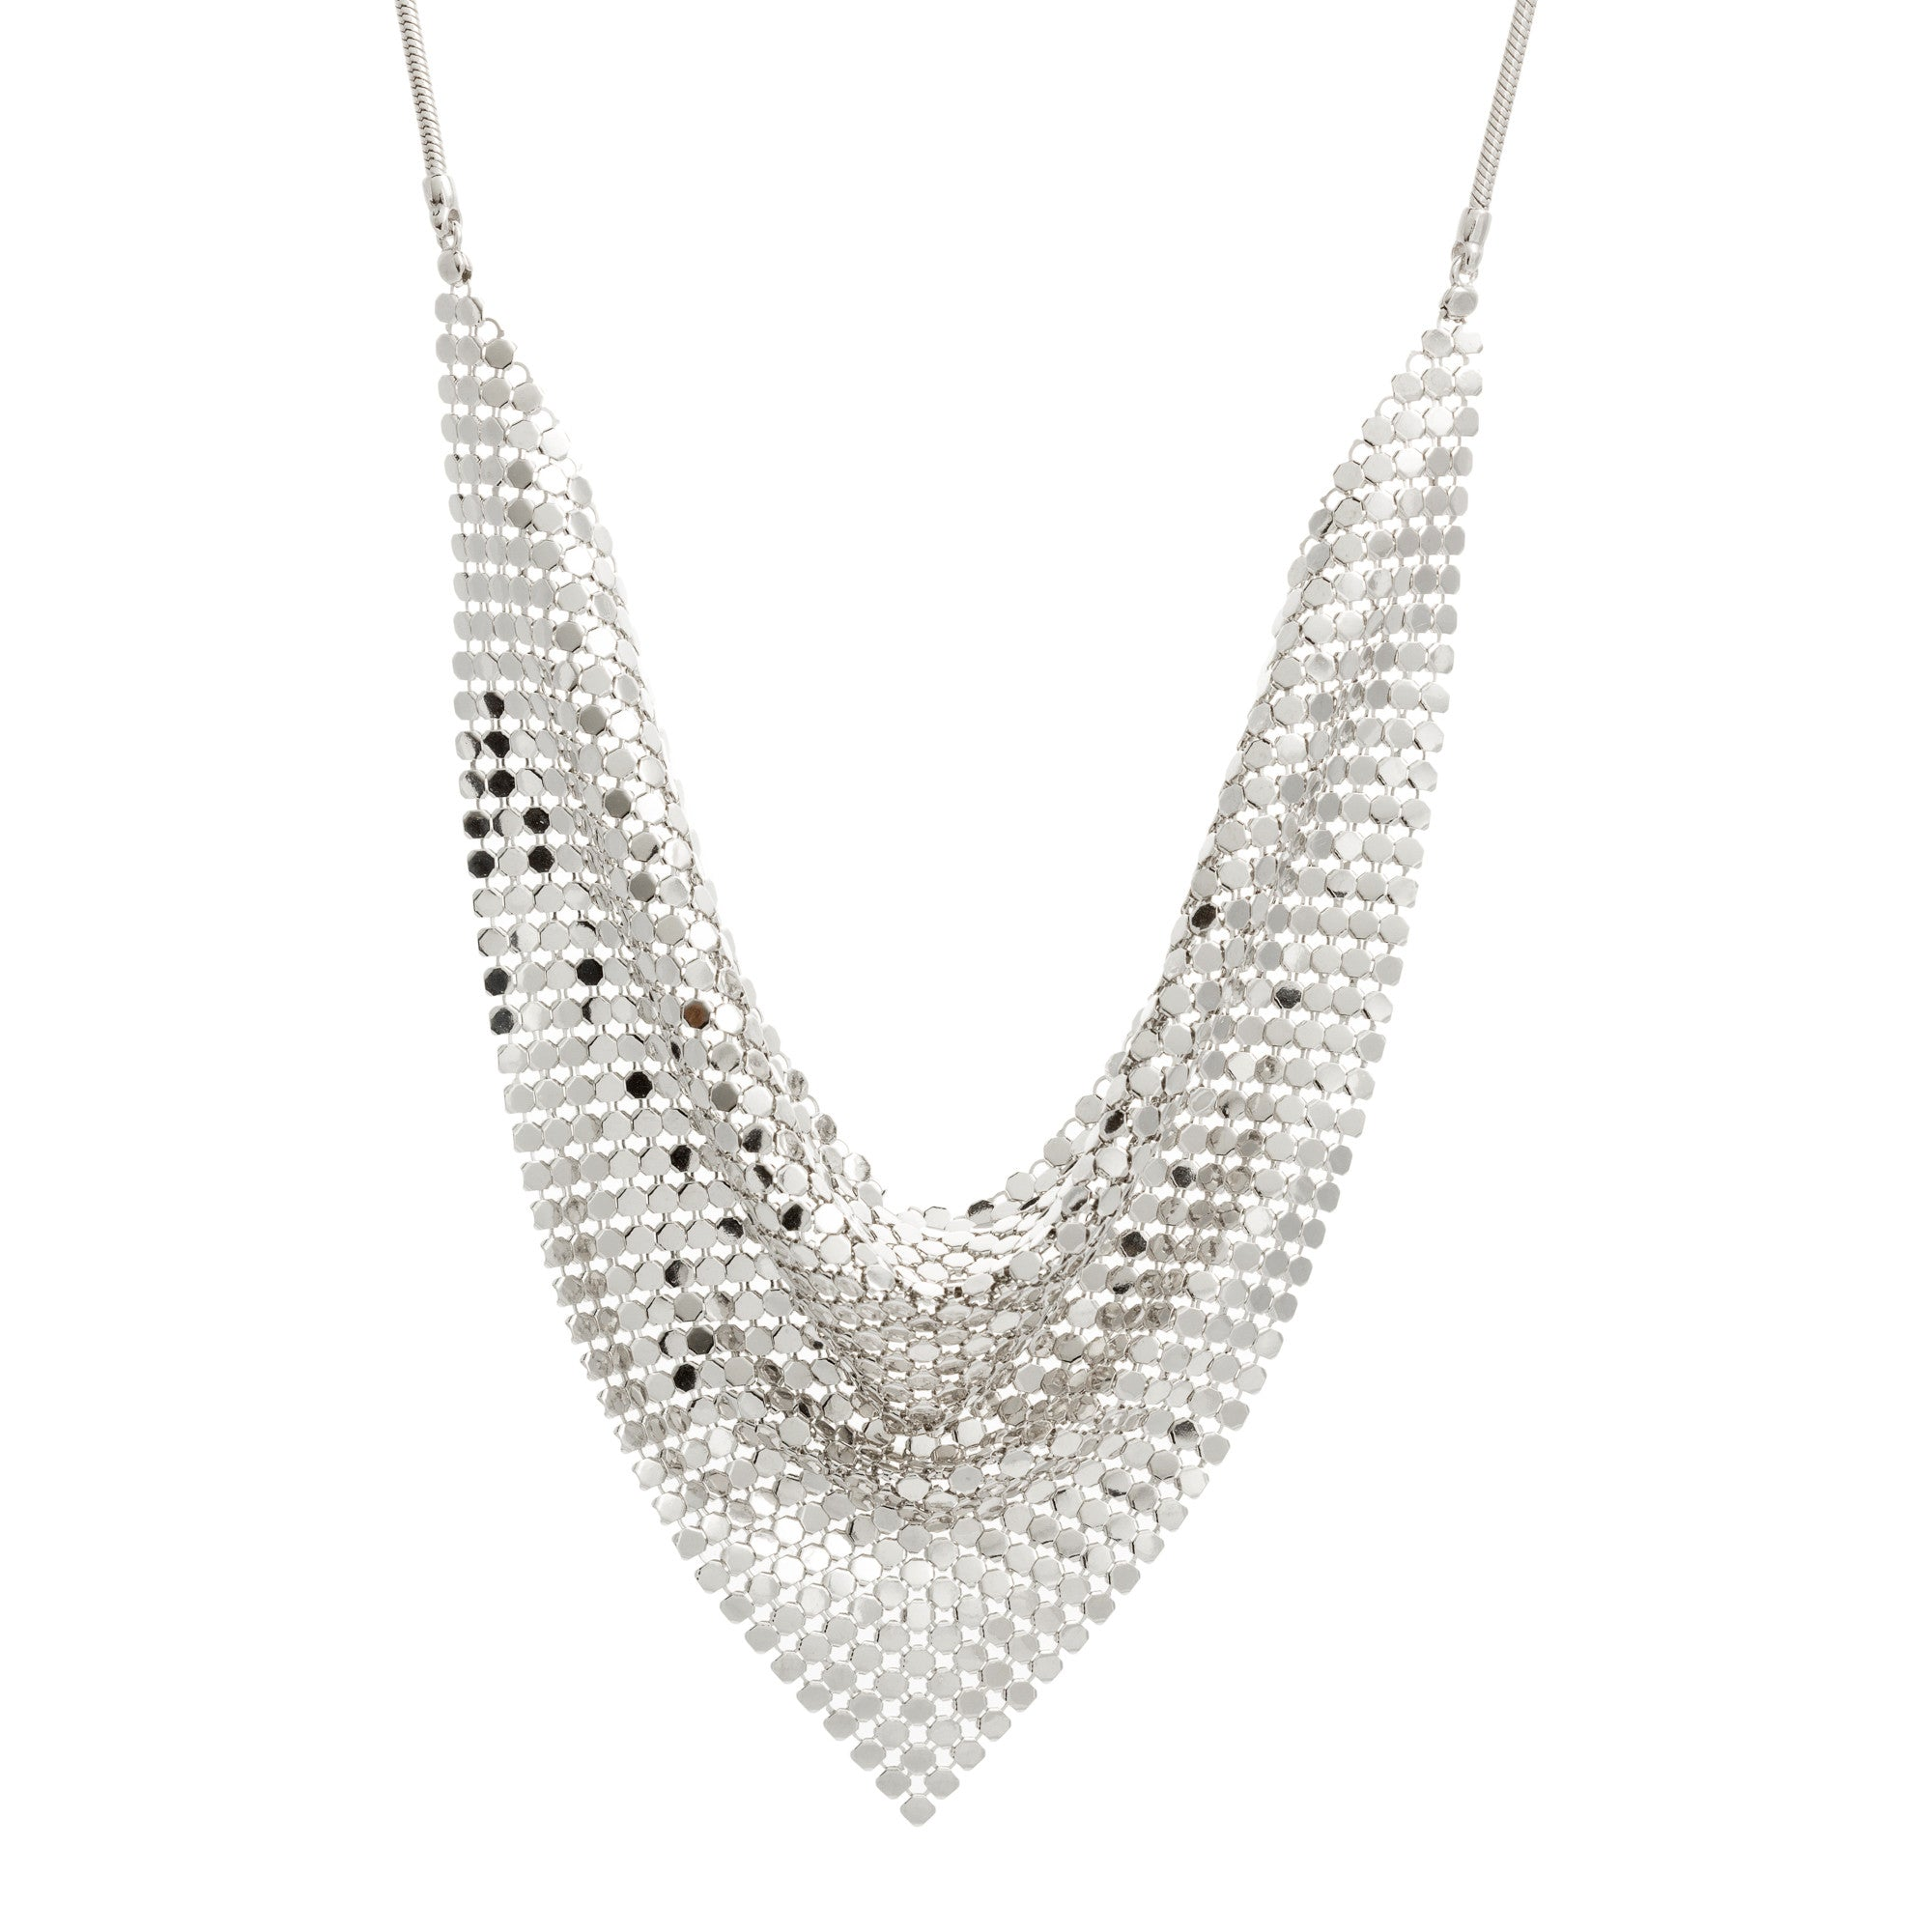 Large Triangle Mesh Necklace